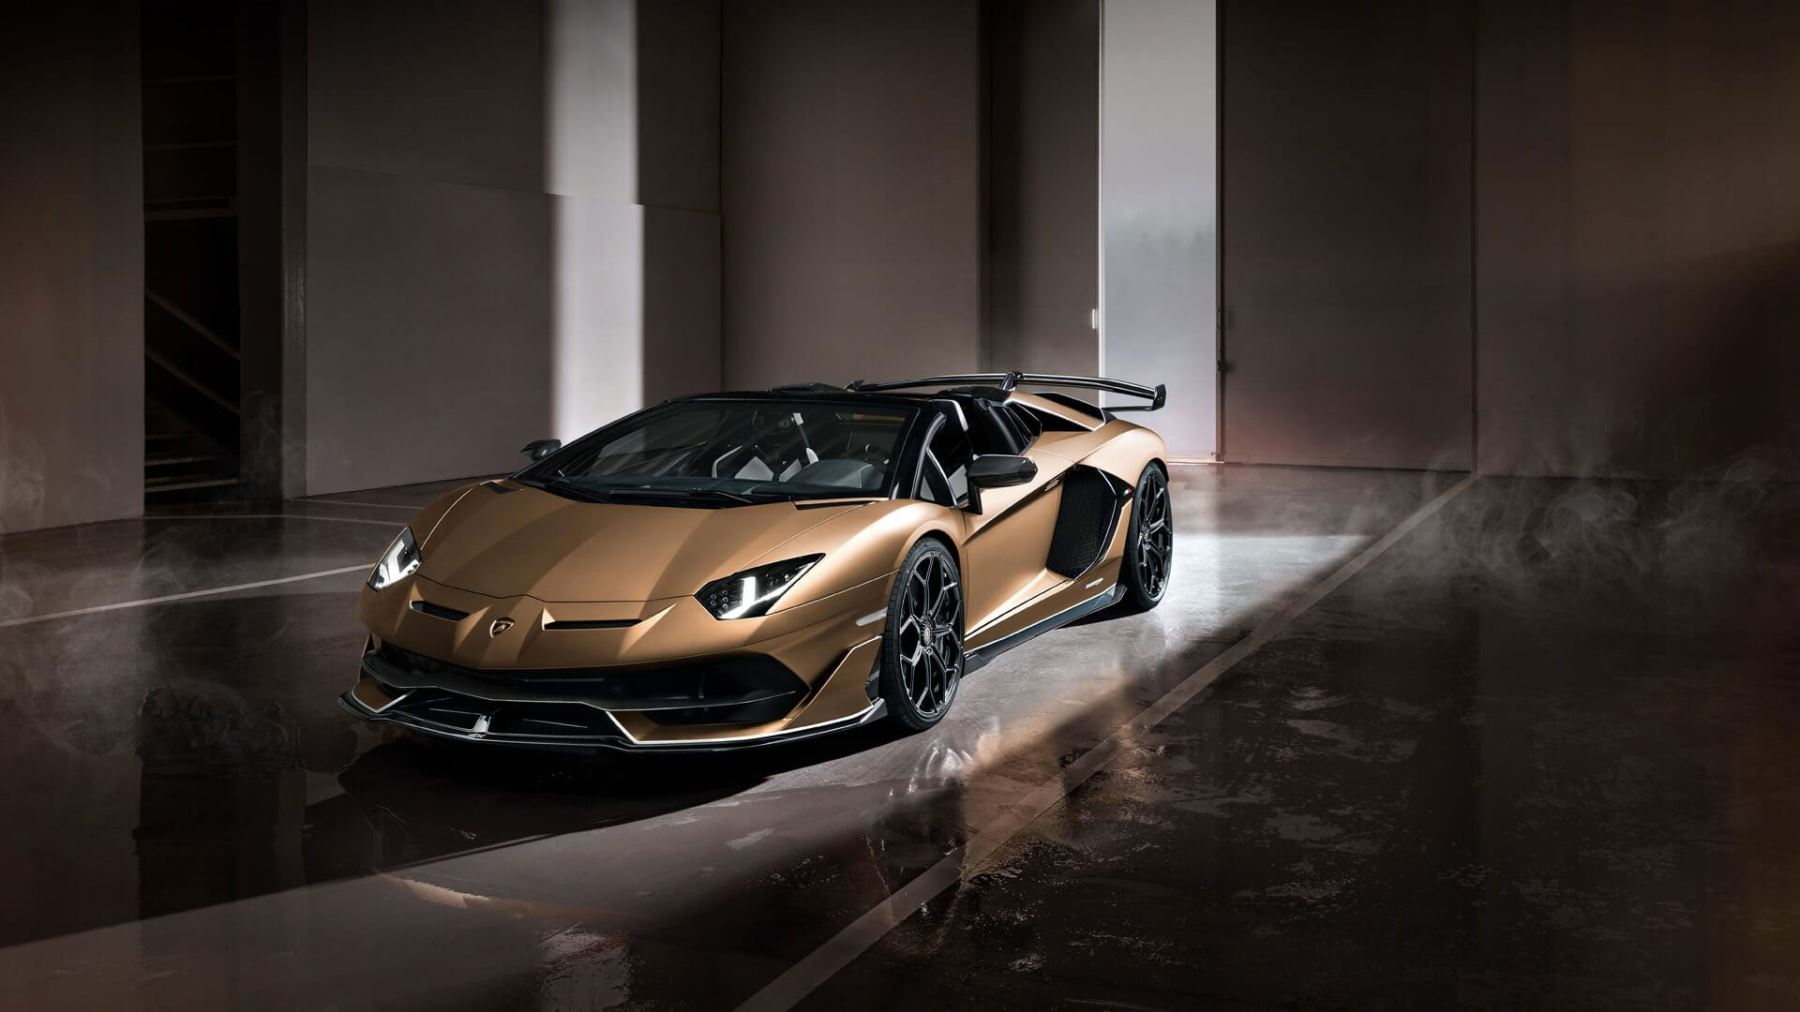 Lamborghini Aventador SVJ Roadster - Real emotions shape the future image 7